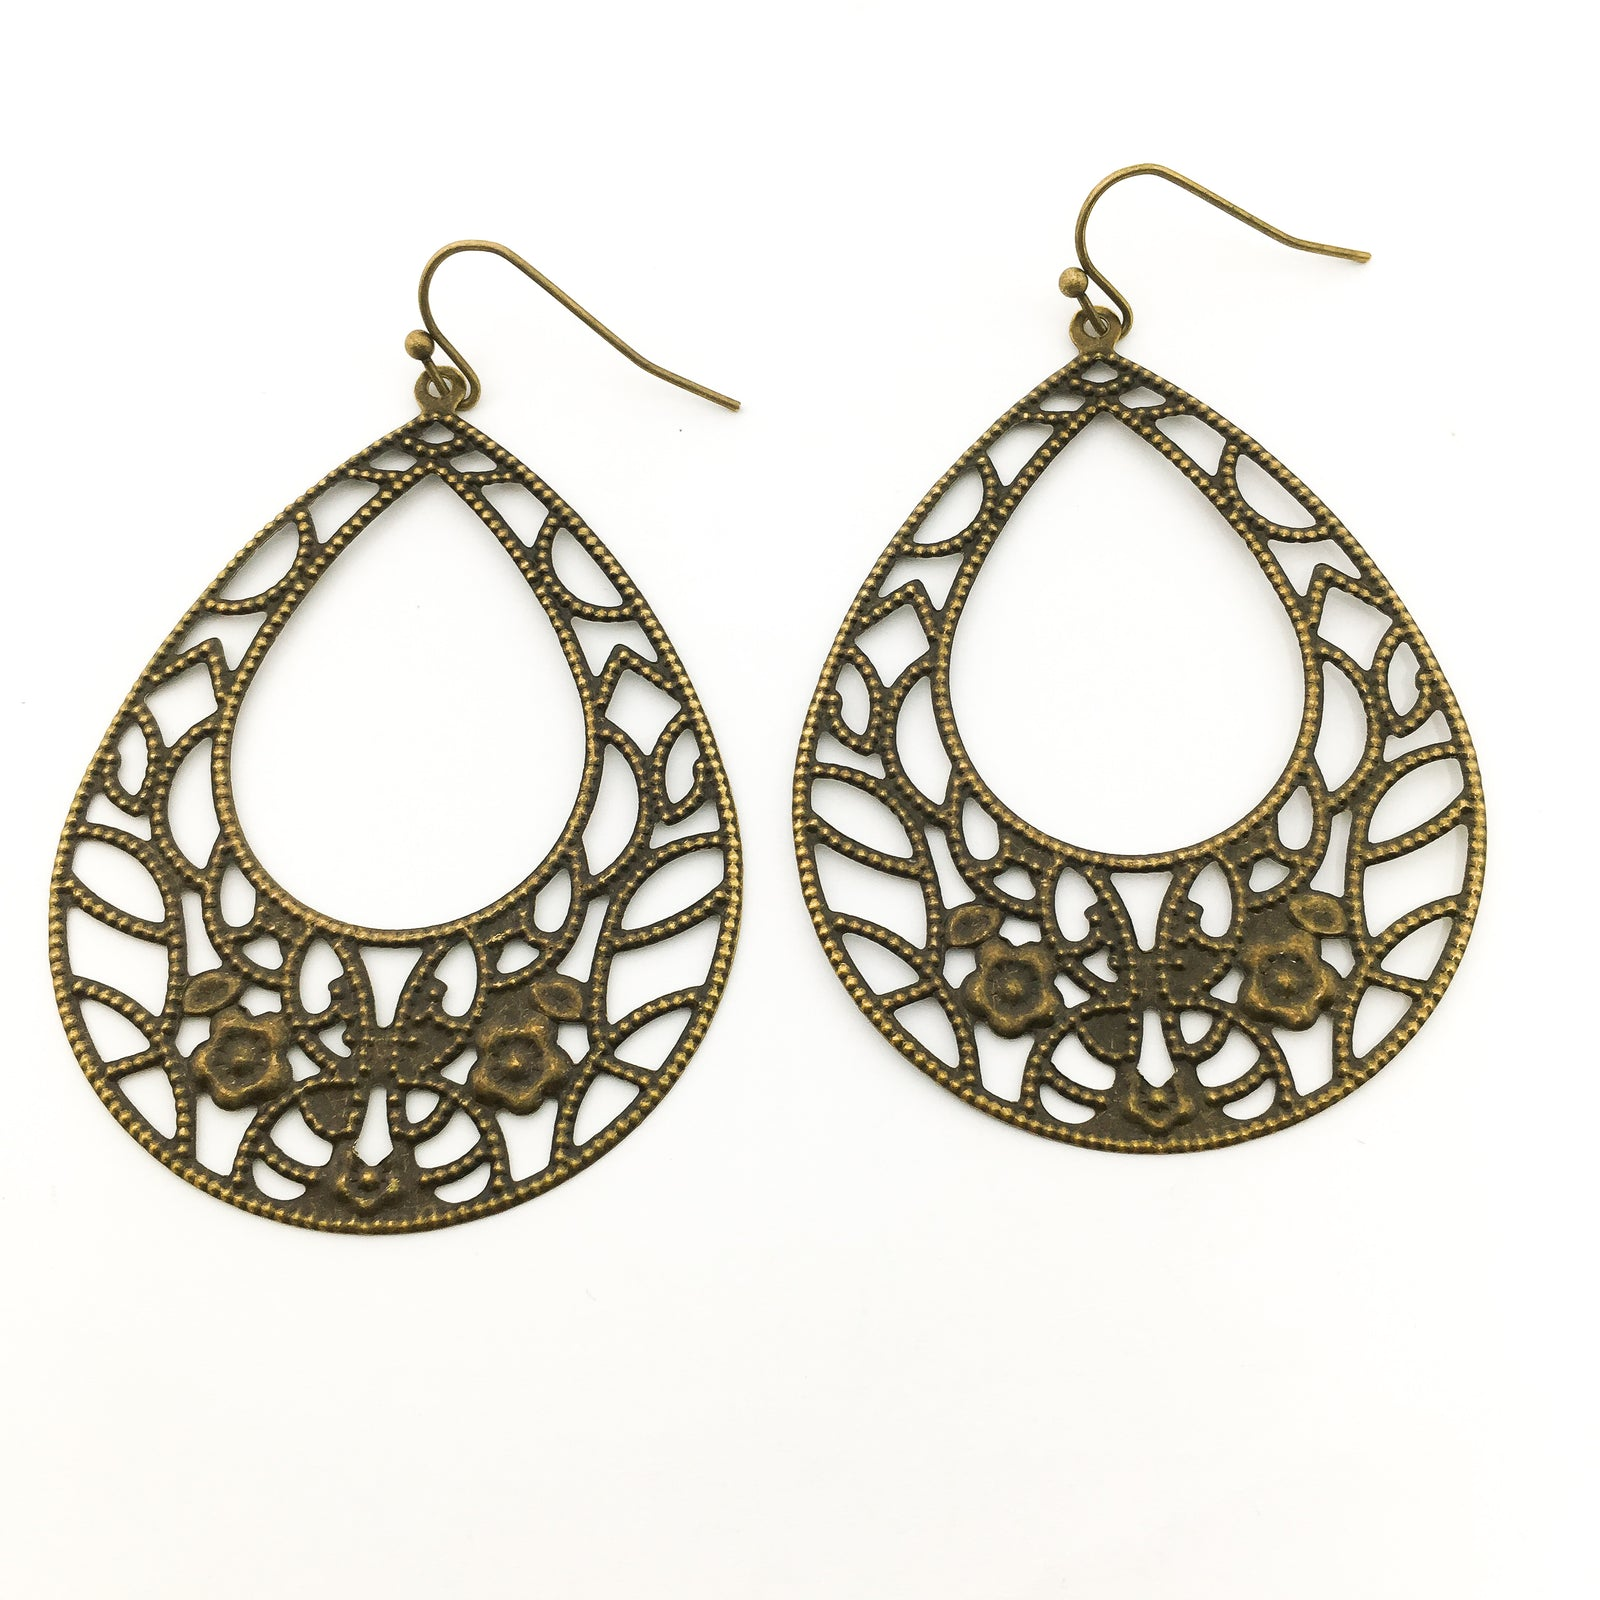 FLORAL OPEN DROP FILIGREE EARRINGS | BRONZE